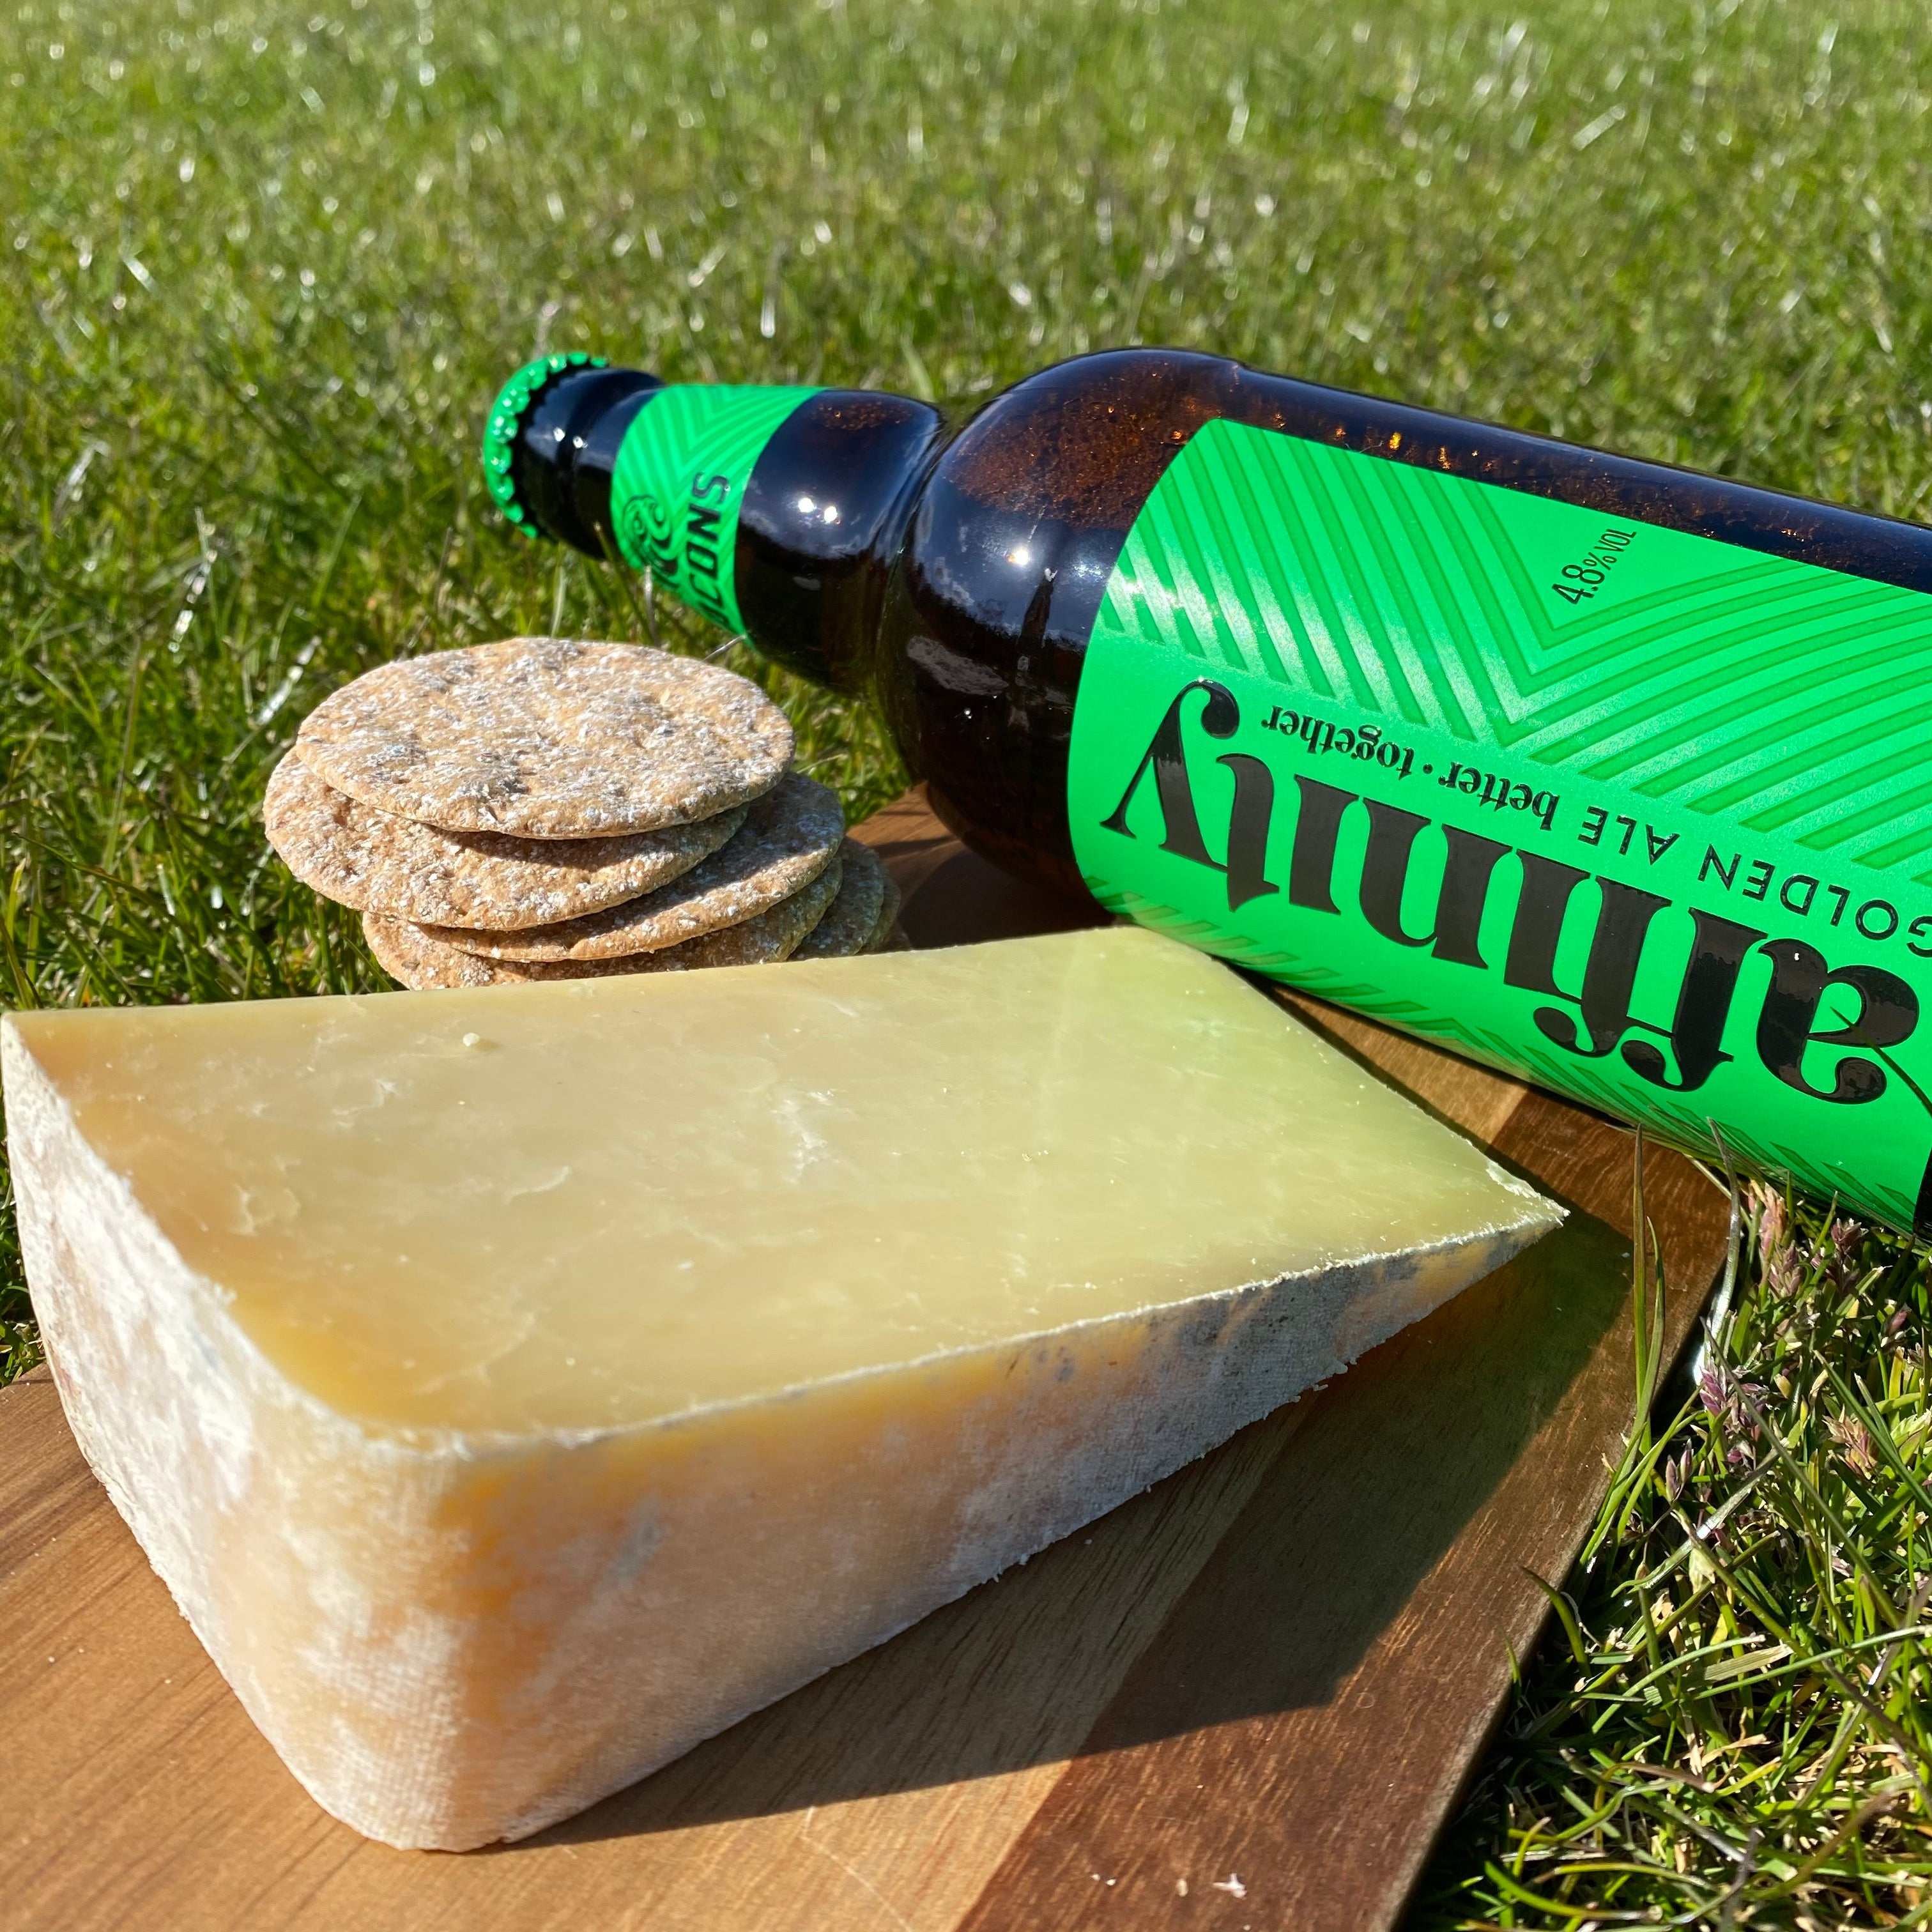 Bottle of Affinity beer, Pitchfork cheese, and crackers